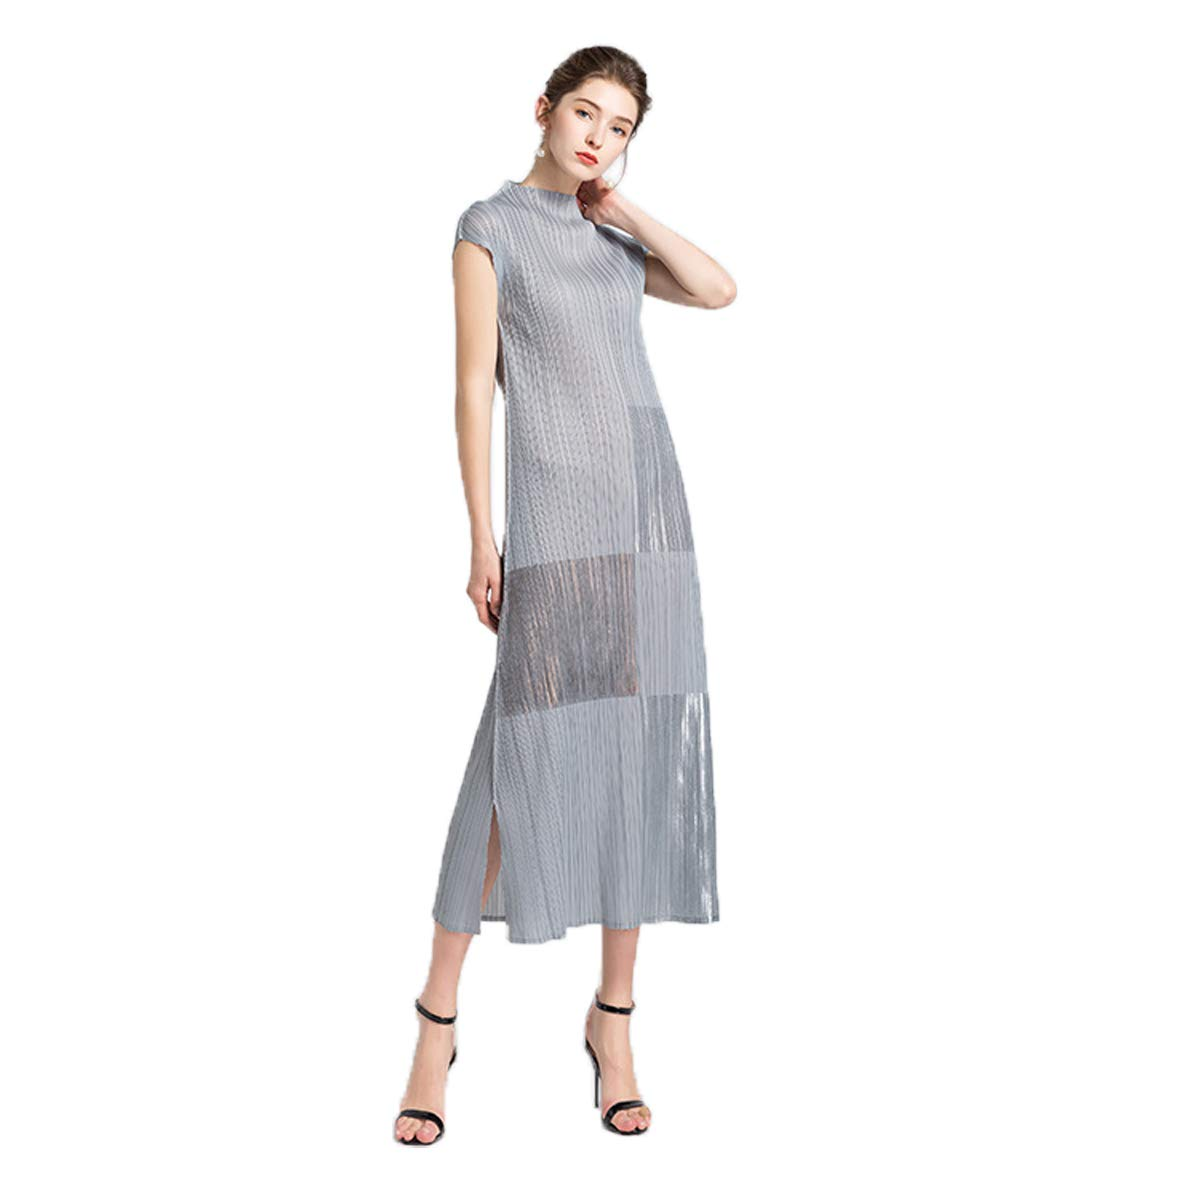 Main color One Size Summer New Women's Dress, European and American Popular Pleated Dress, ShortSleeved Long Dress